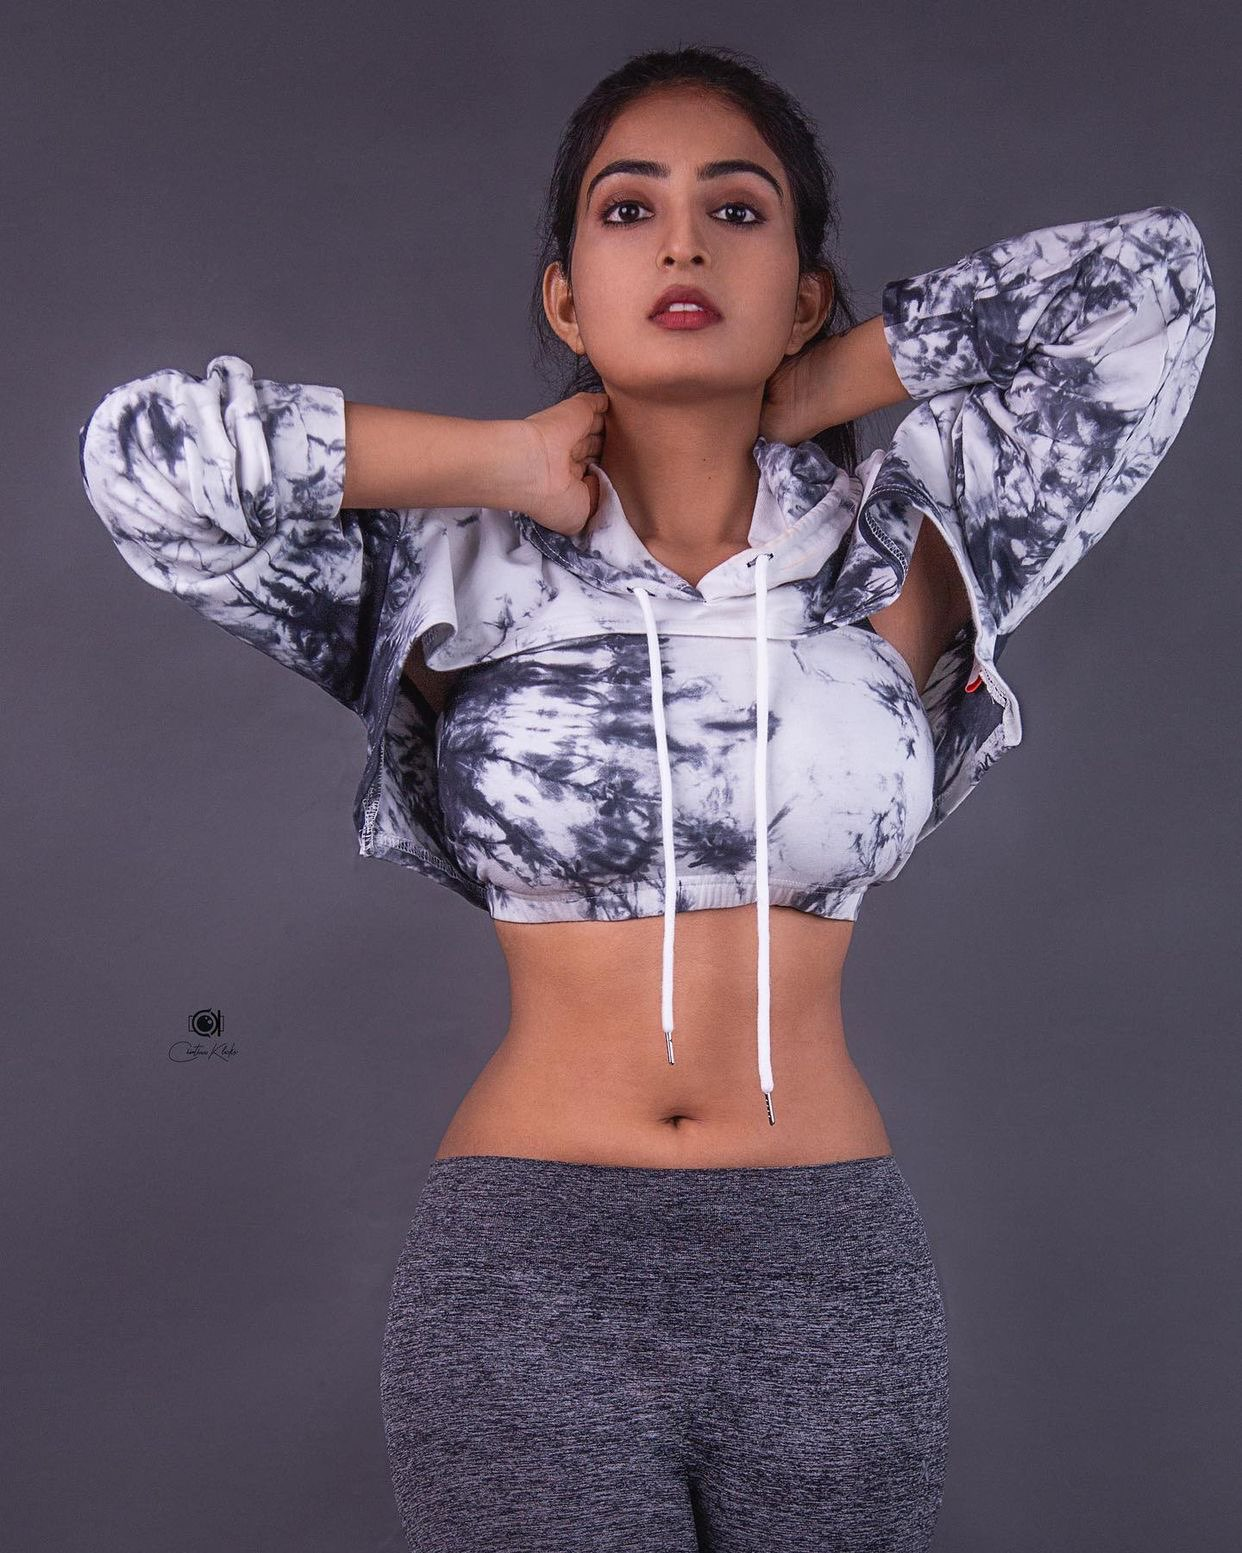 Ananya Nagalla latest photos in gym wear | Navel Actress Trend